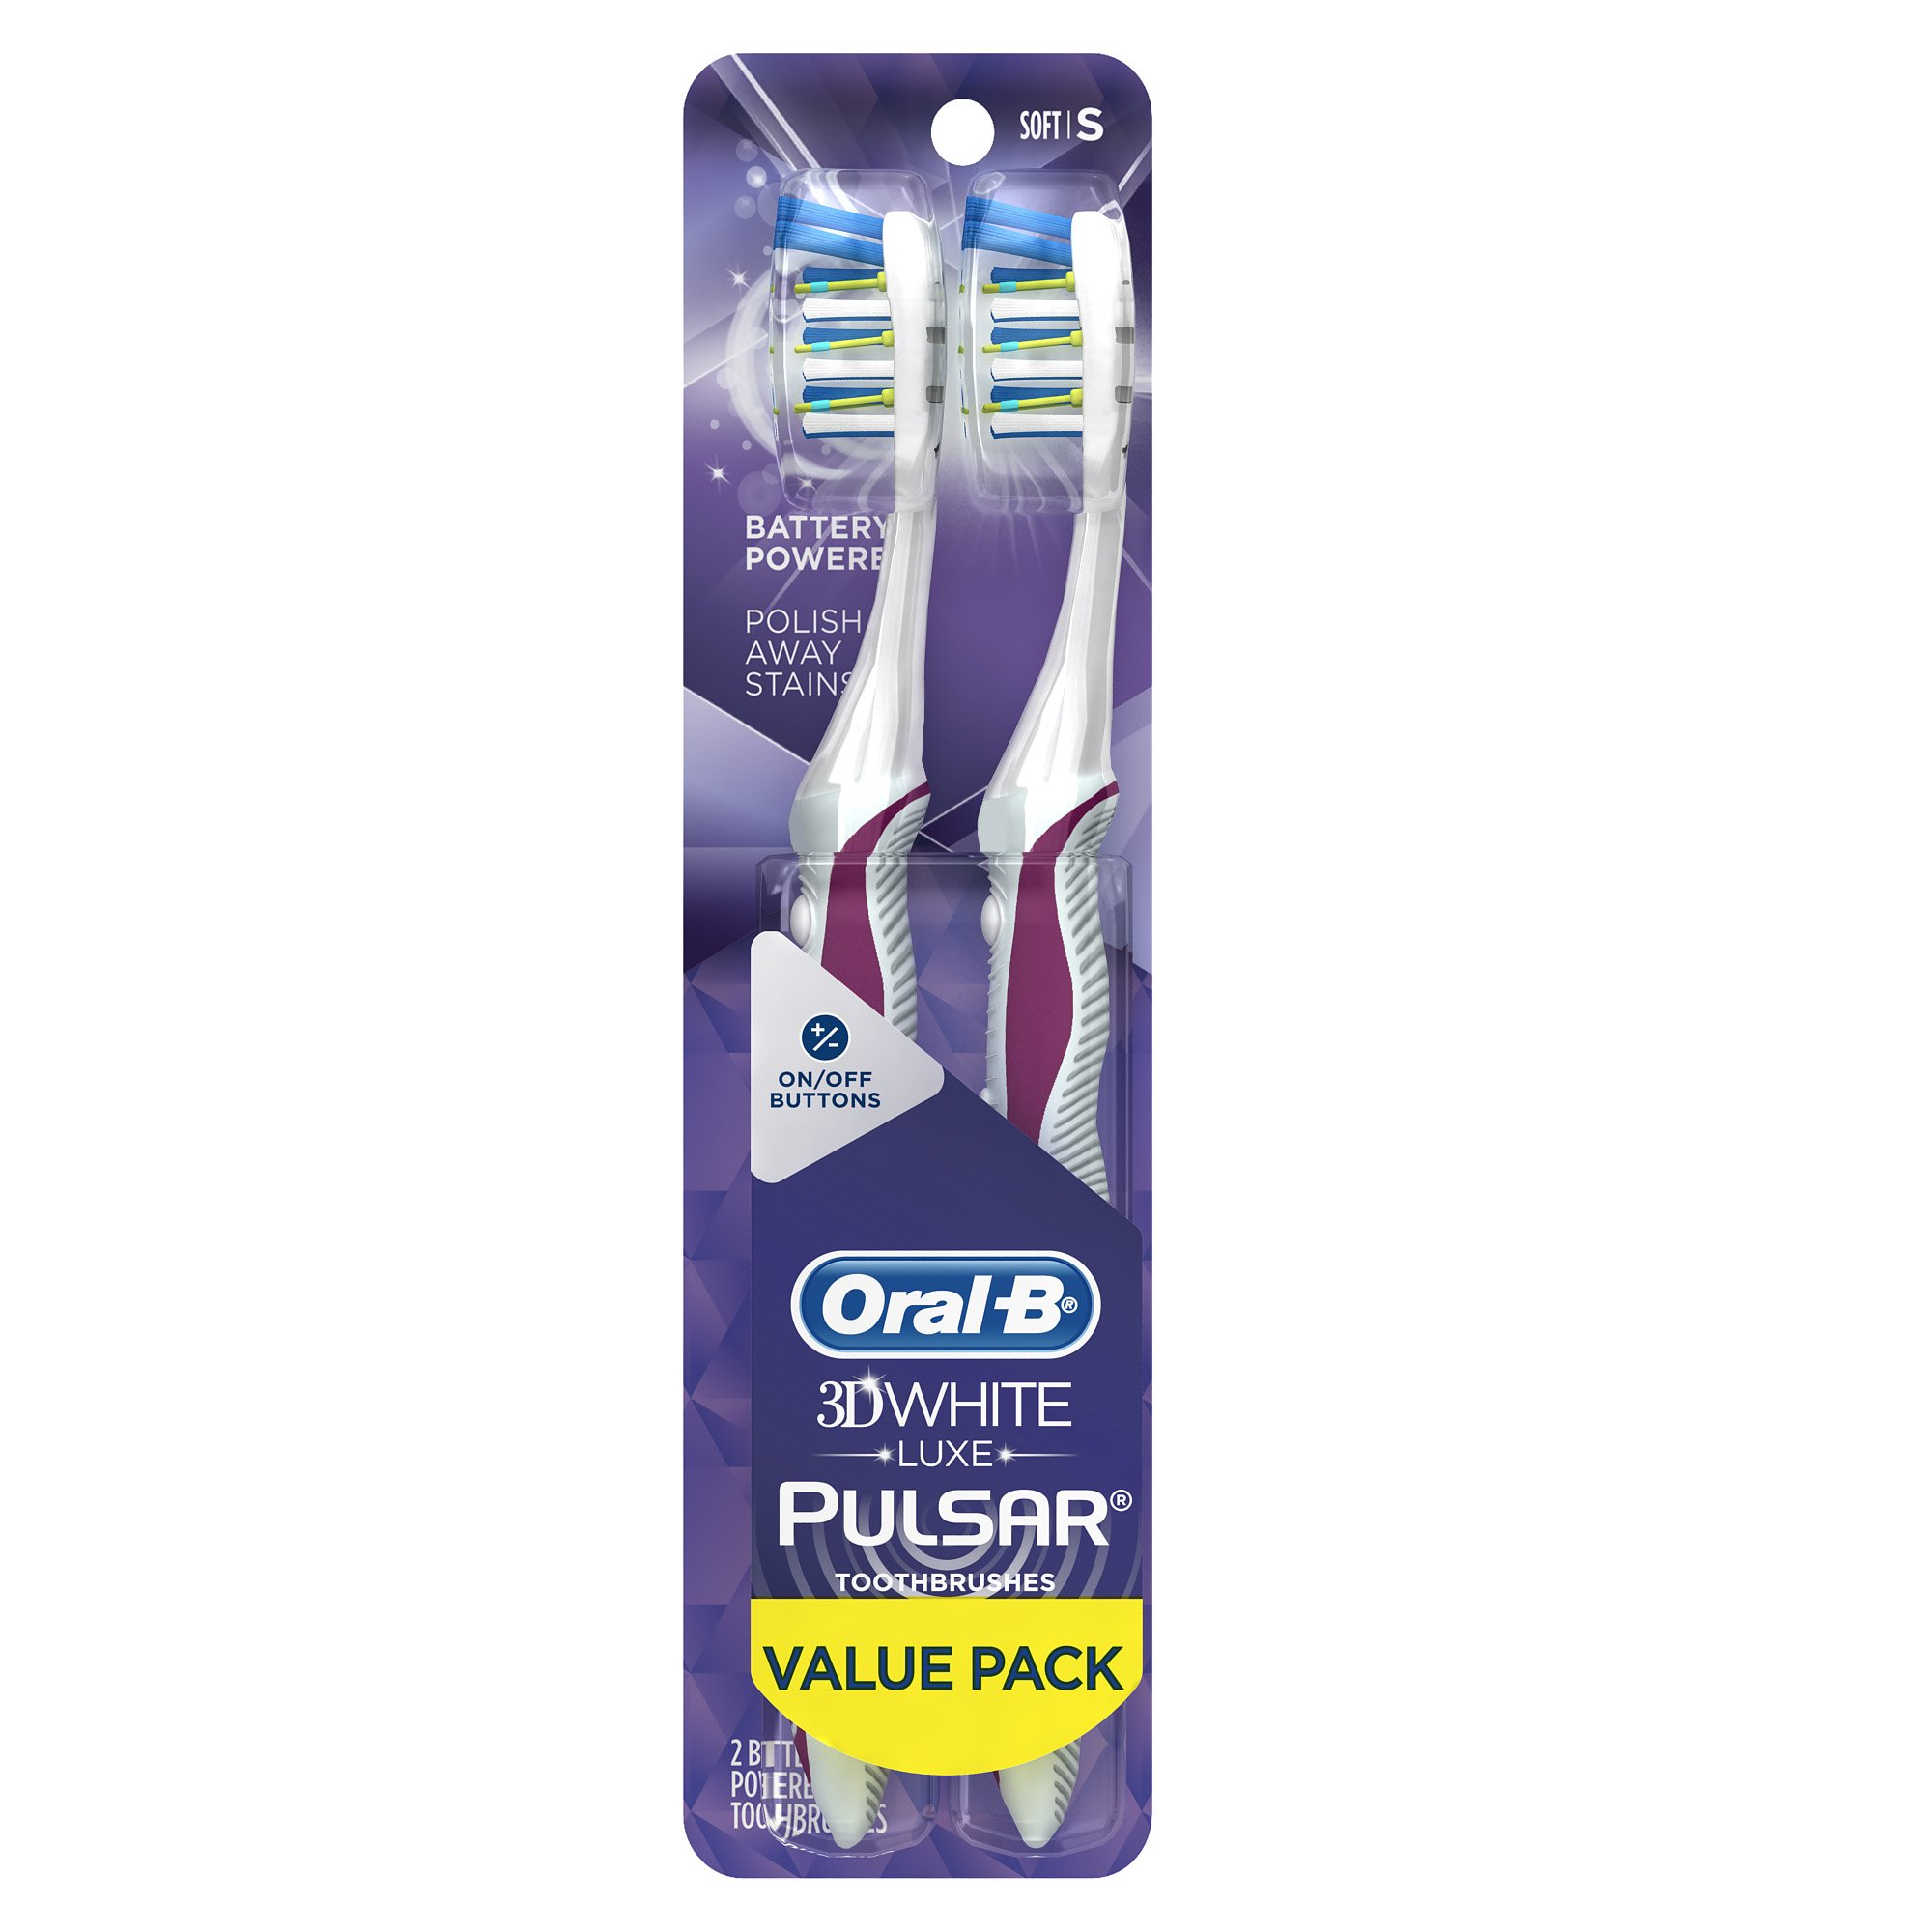 Oral-B Pulsar 3d White Advanced Vivid Soft Toothbrush Twin Pack, 2 Count, (Colors May Vary)